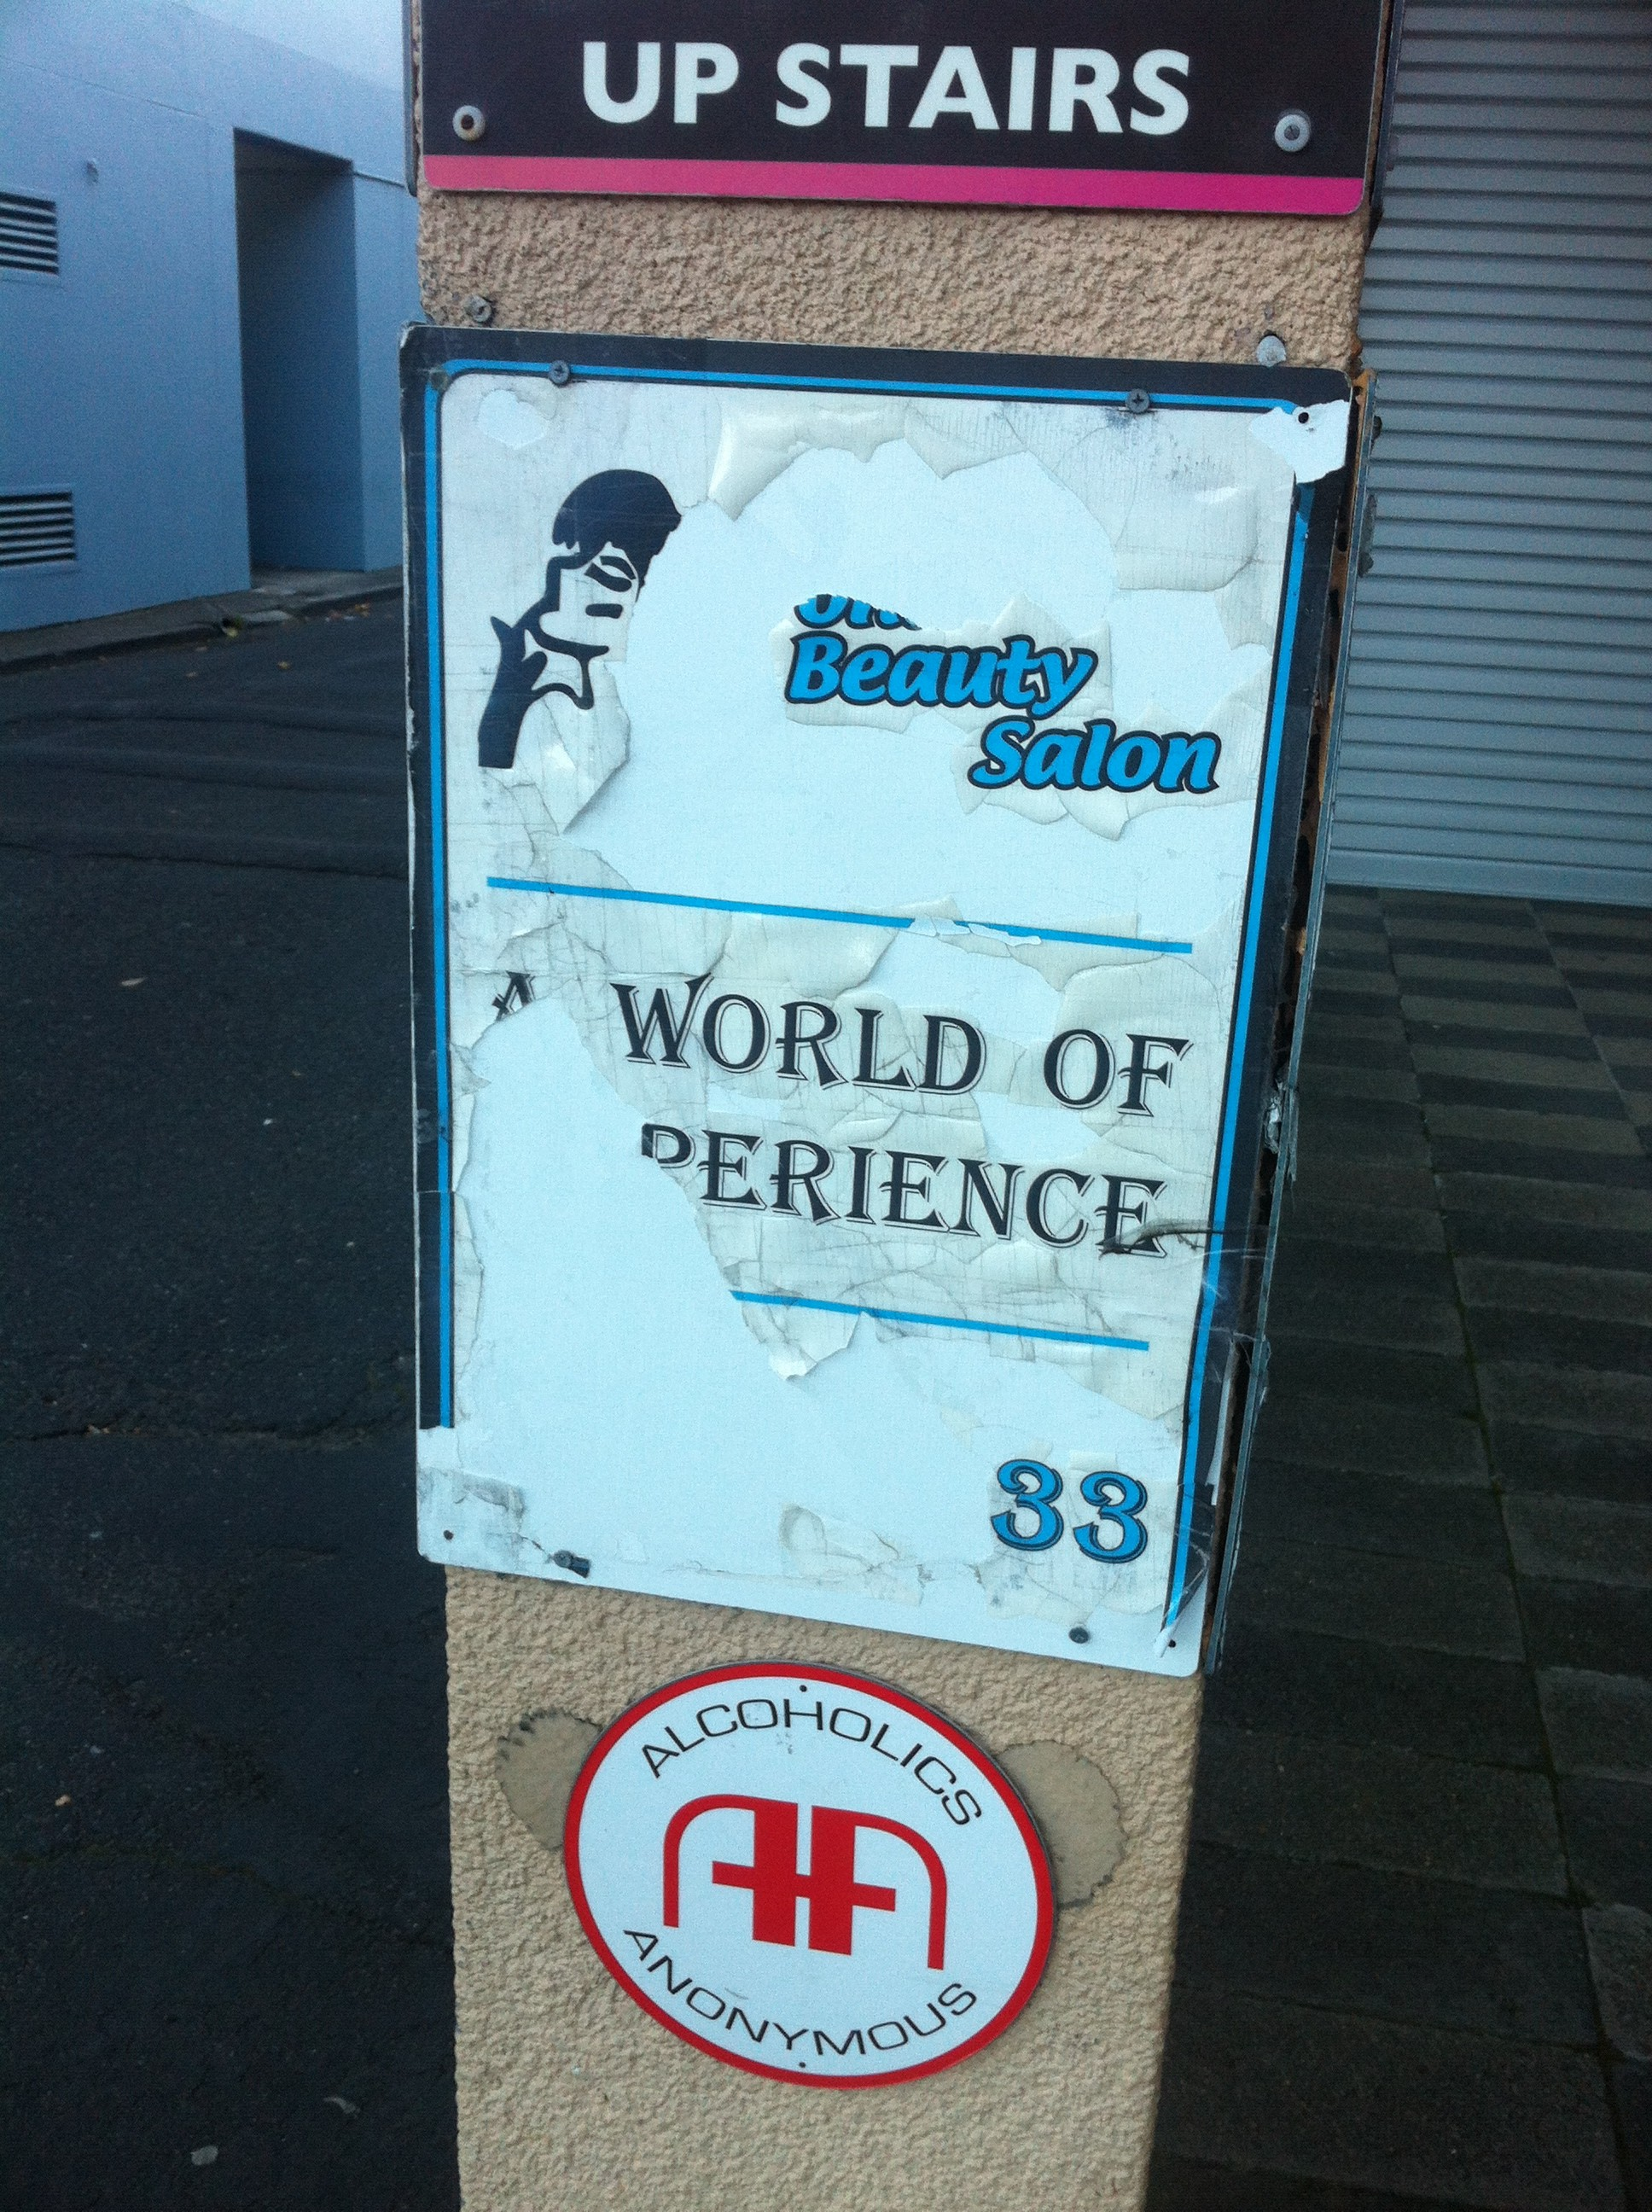 World of Experience